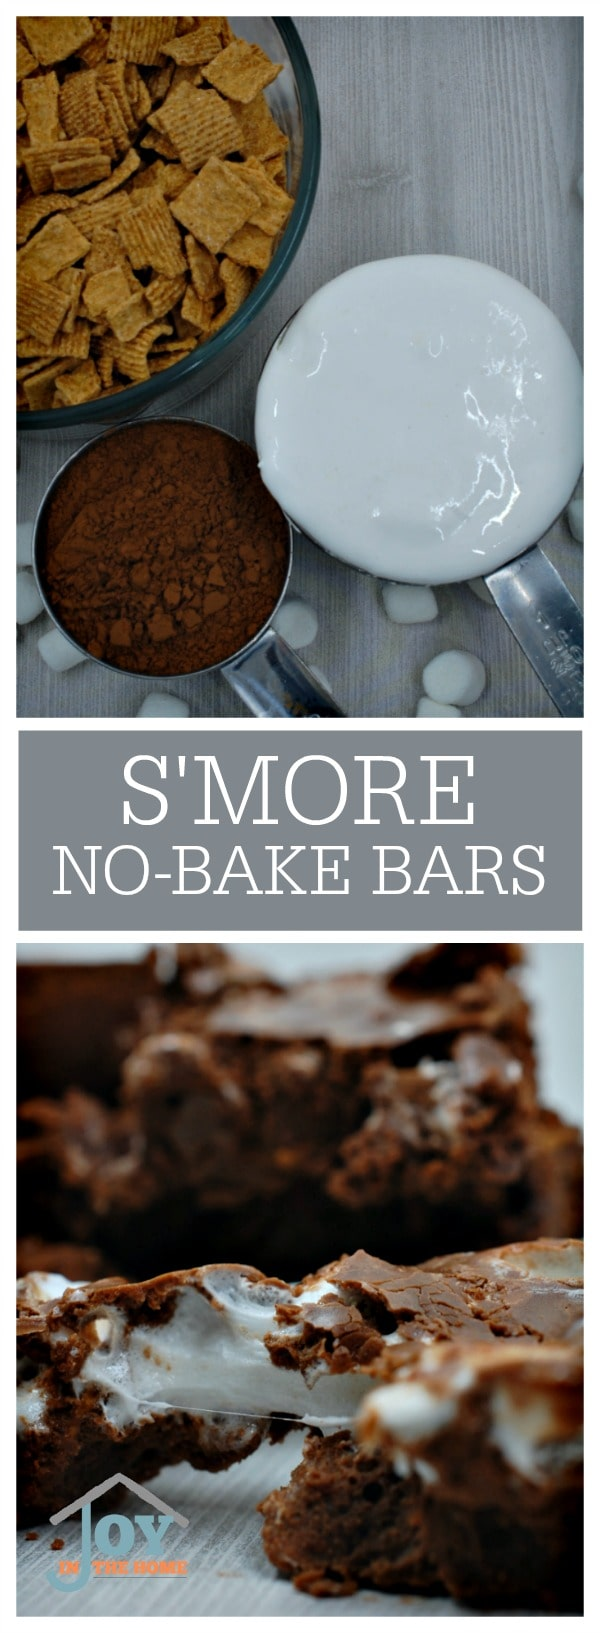 S'more No-Bake Bars - We doesn't love the taste of chocolate, graham crackers and marshmallows? These quick and easy bars are delicious! | www.joyinthehome.com